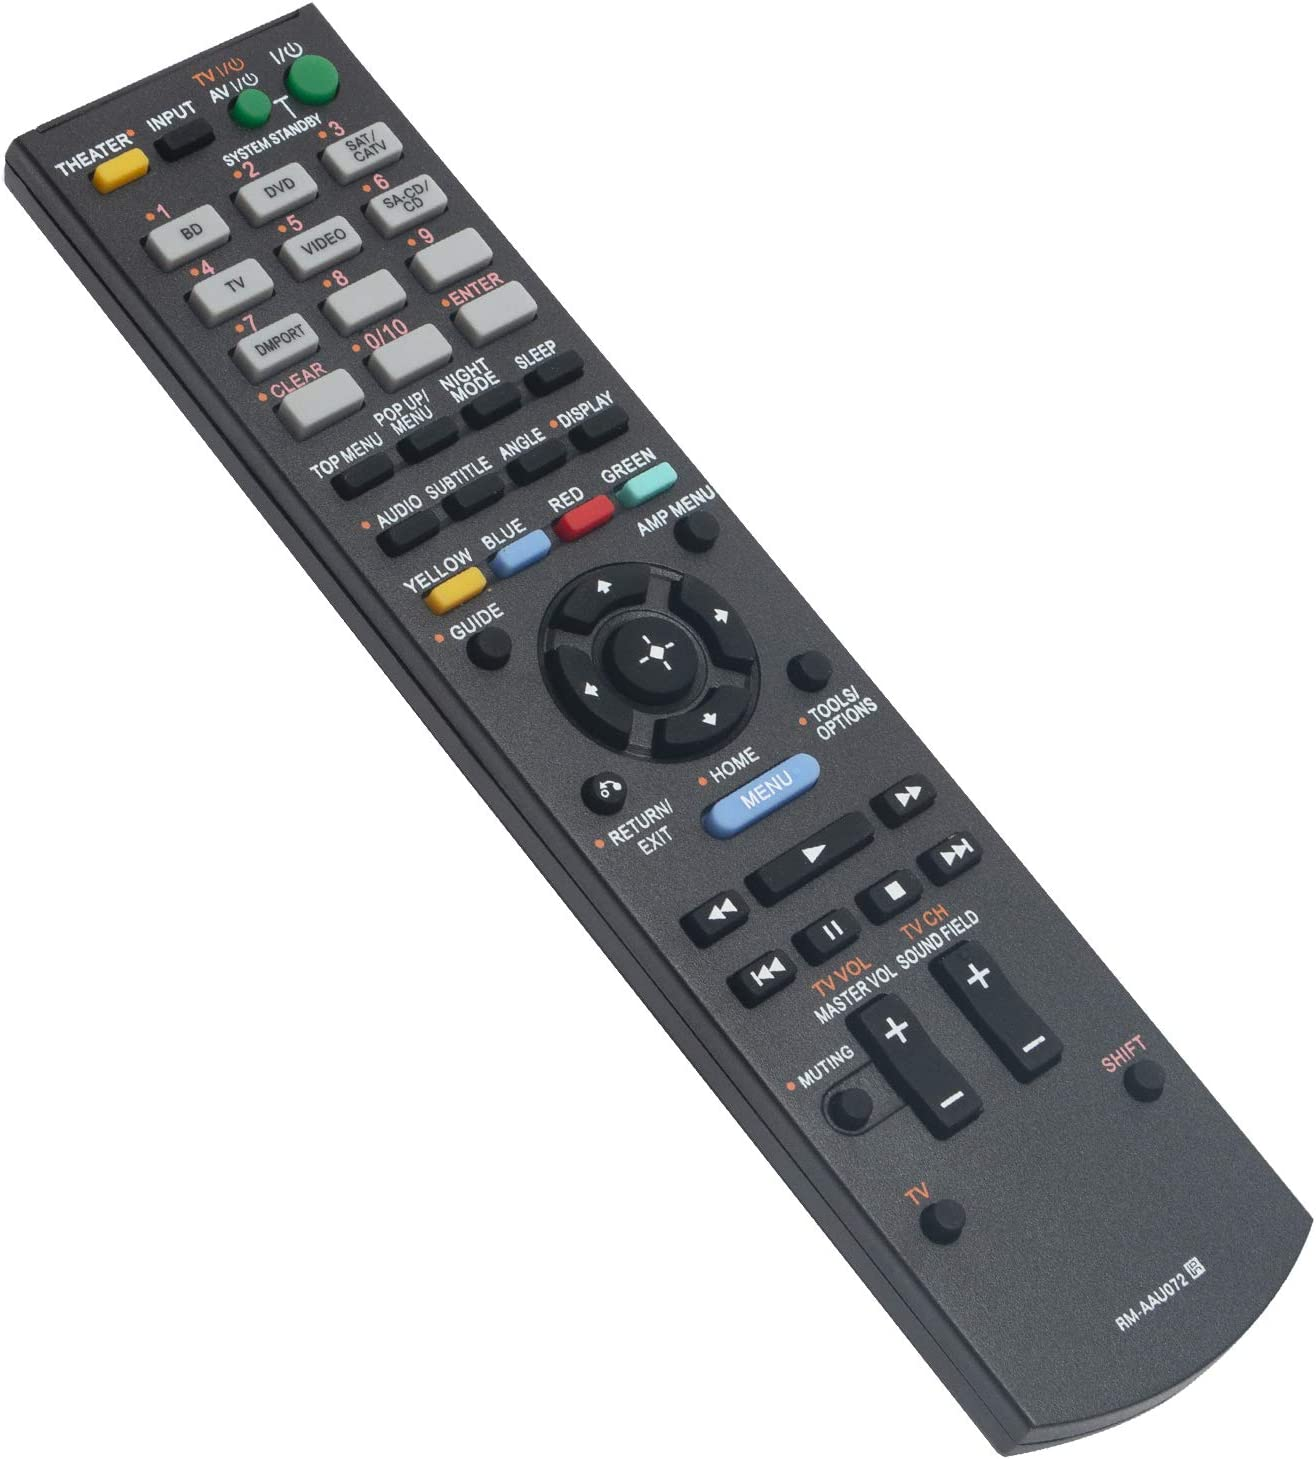 RM-AAU072 RMAAU072 Replace Remote Control Sub RM-AAU071 fit for Sony Home Audio Theater System HT-CT150 HT-CT150HP HT-SS370 HT-SF470 STR-KS370 HT-CT350 HT-AS5 HTCT150 HTCT150HP HTSS370 HTSF470